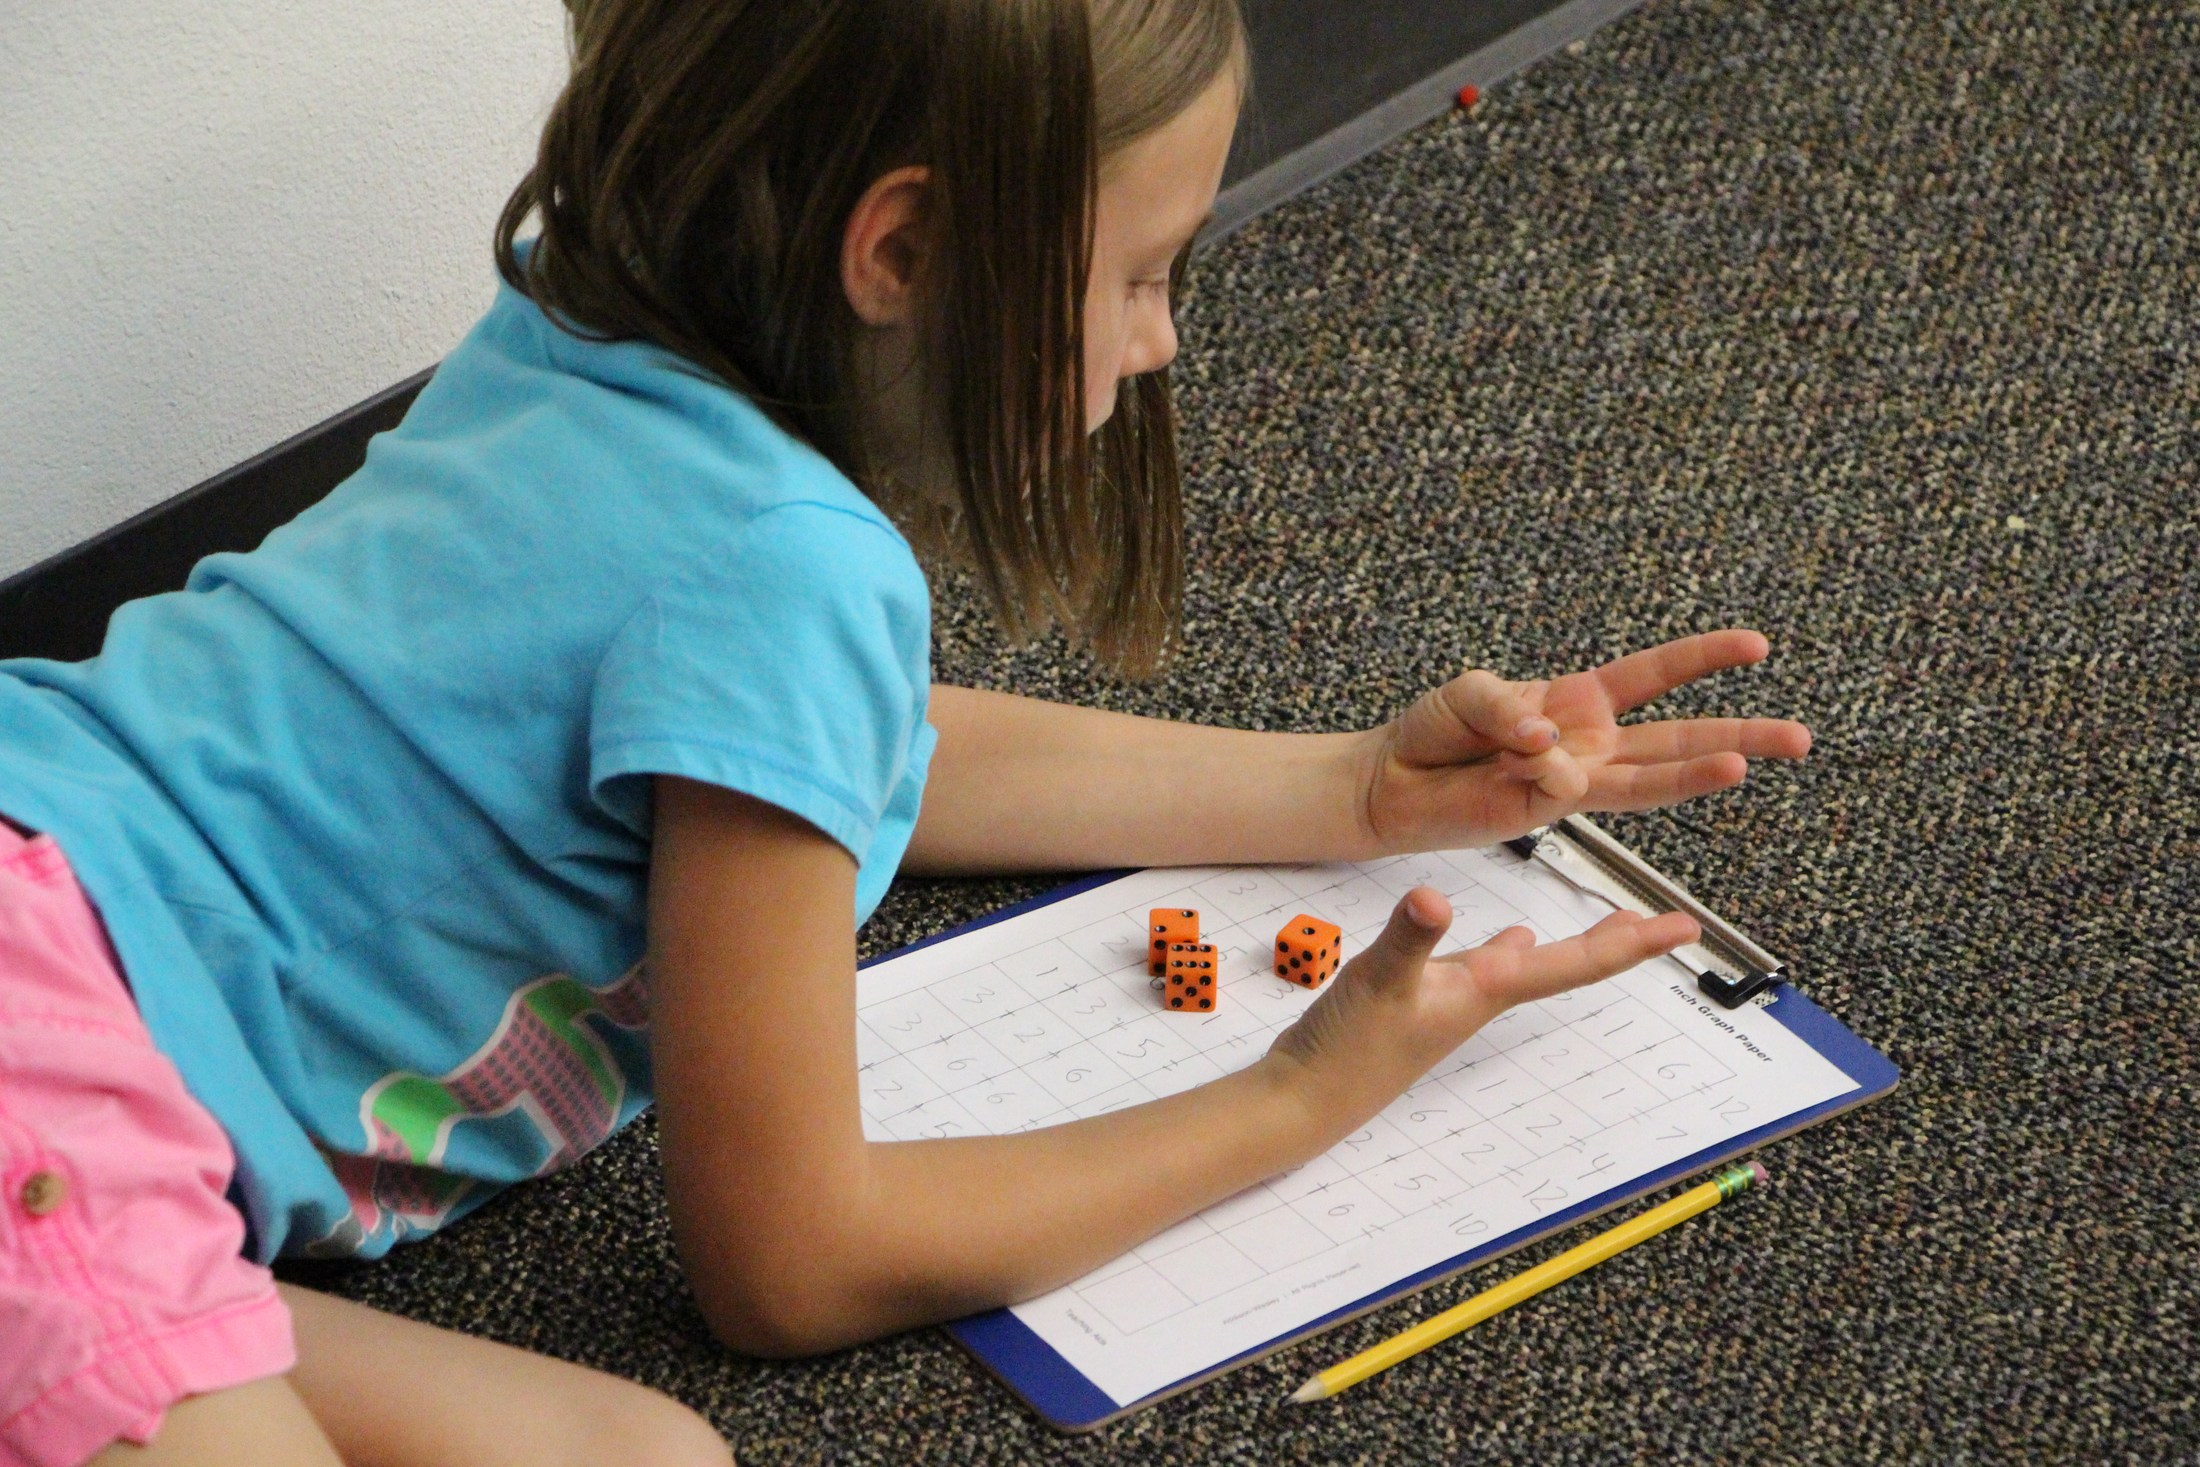 A student counts on her fingers as she works on a math worksheet.